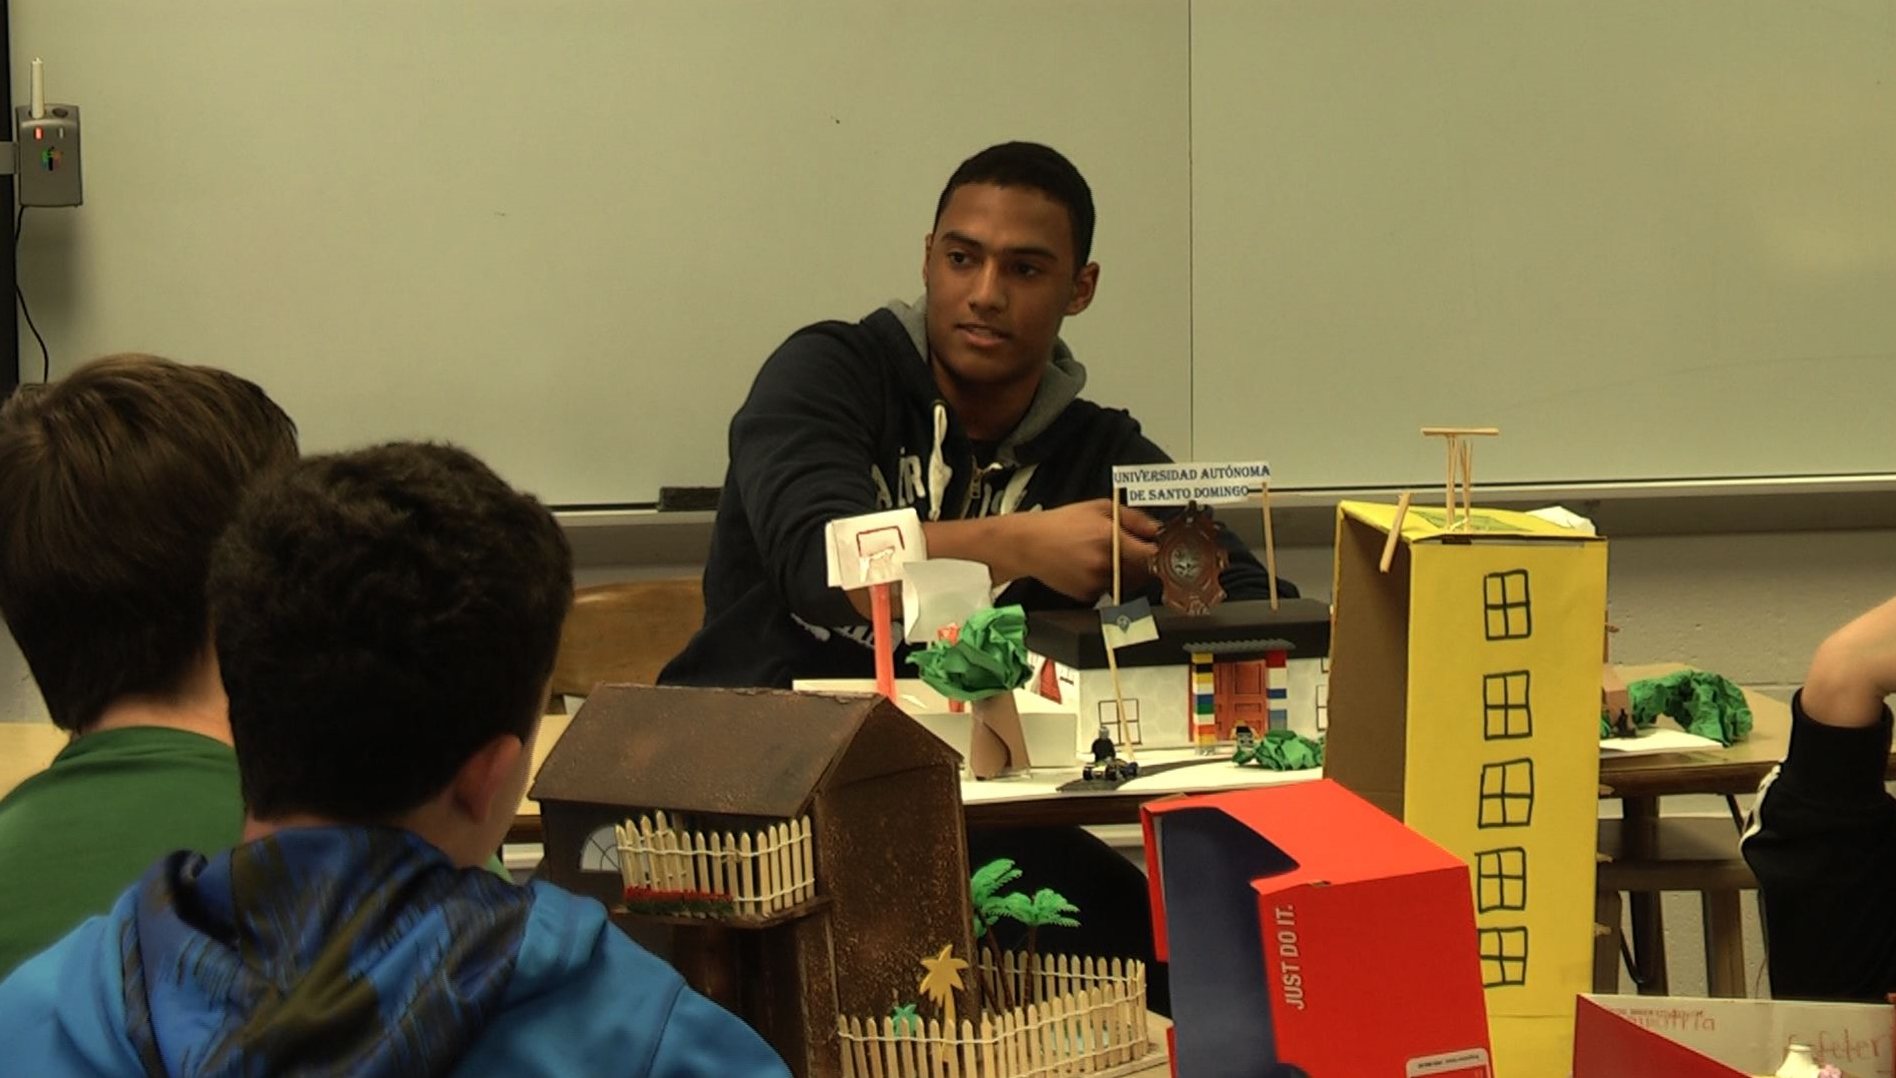 Boy at front of classroom describing a model of a building